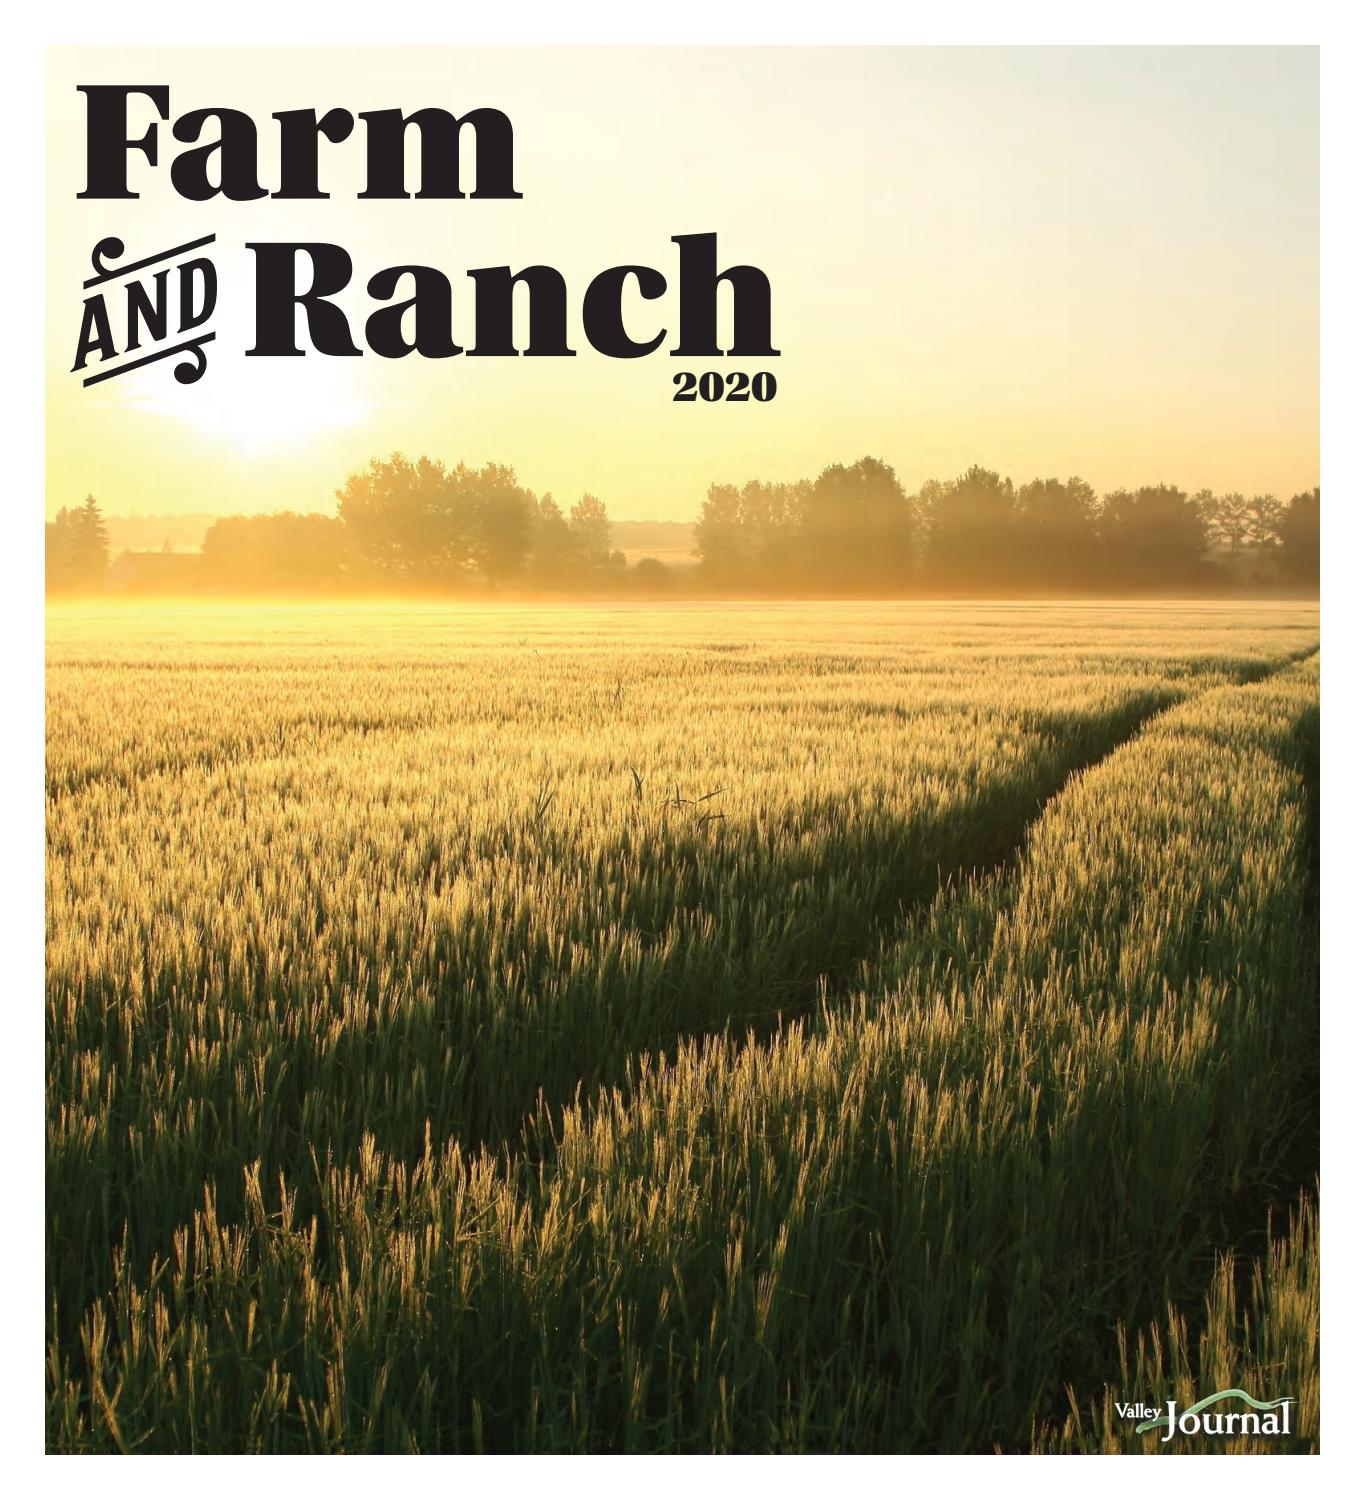 farm ranch 2020 by valley journal issuu farm ranch 2020 by valley journal issuu